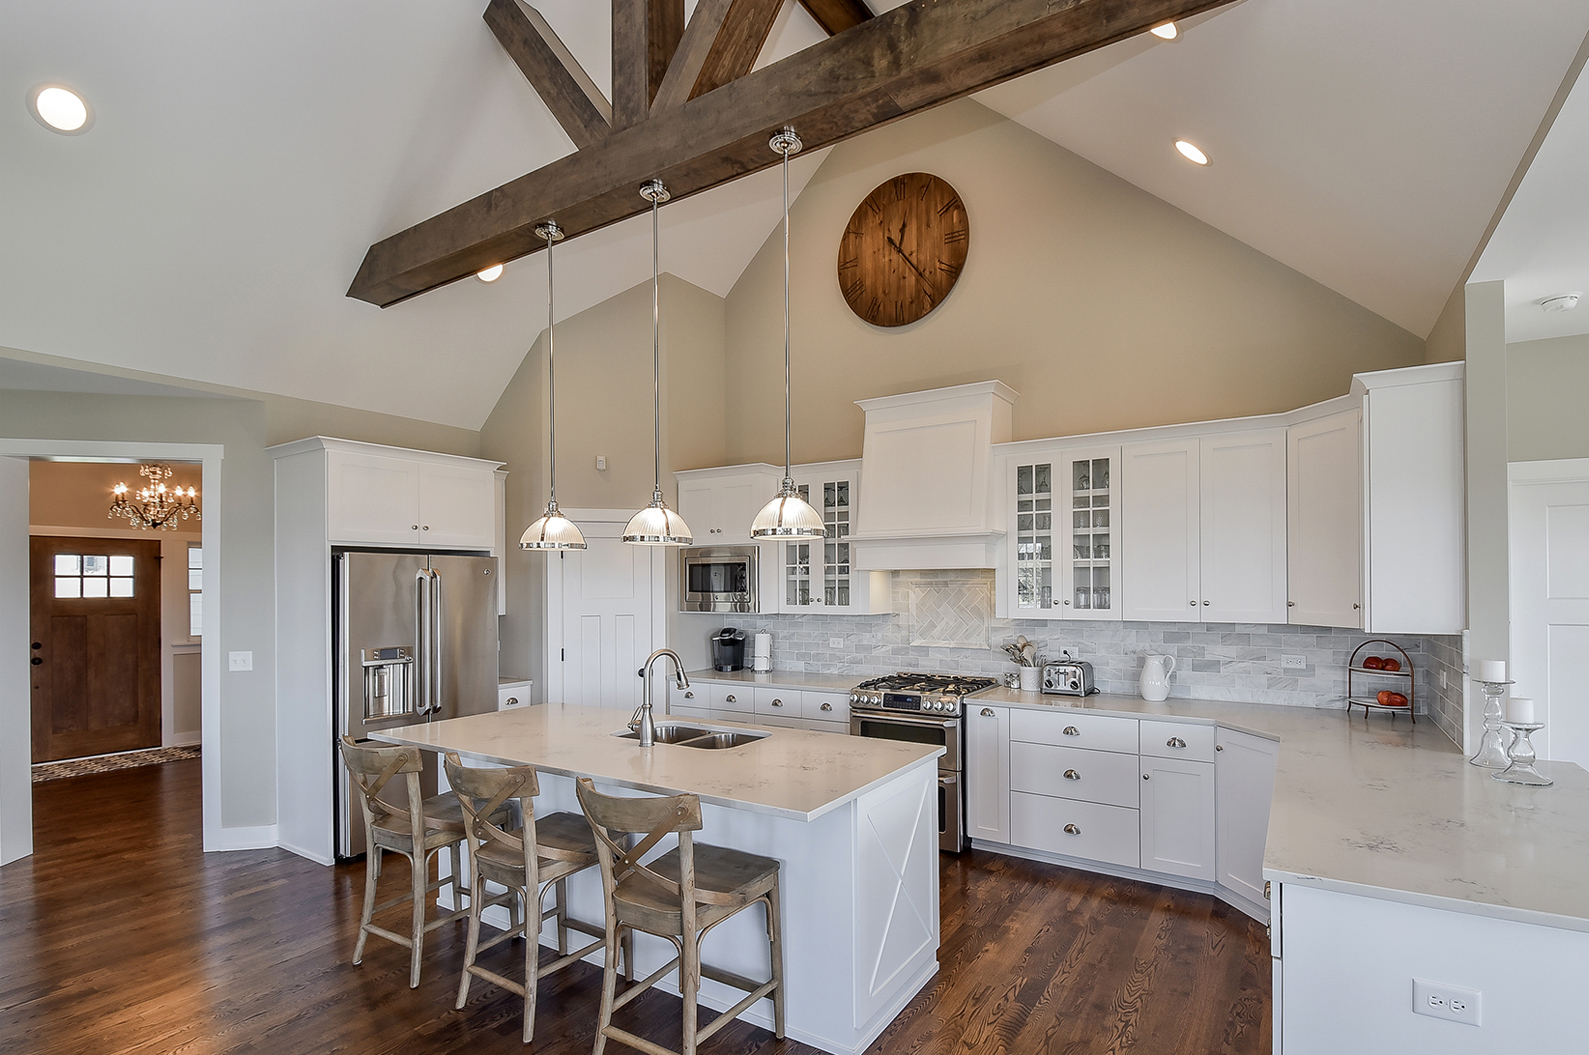 New Construction Home Design Functional Comfort